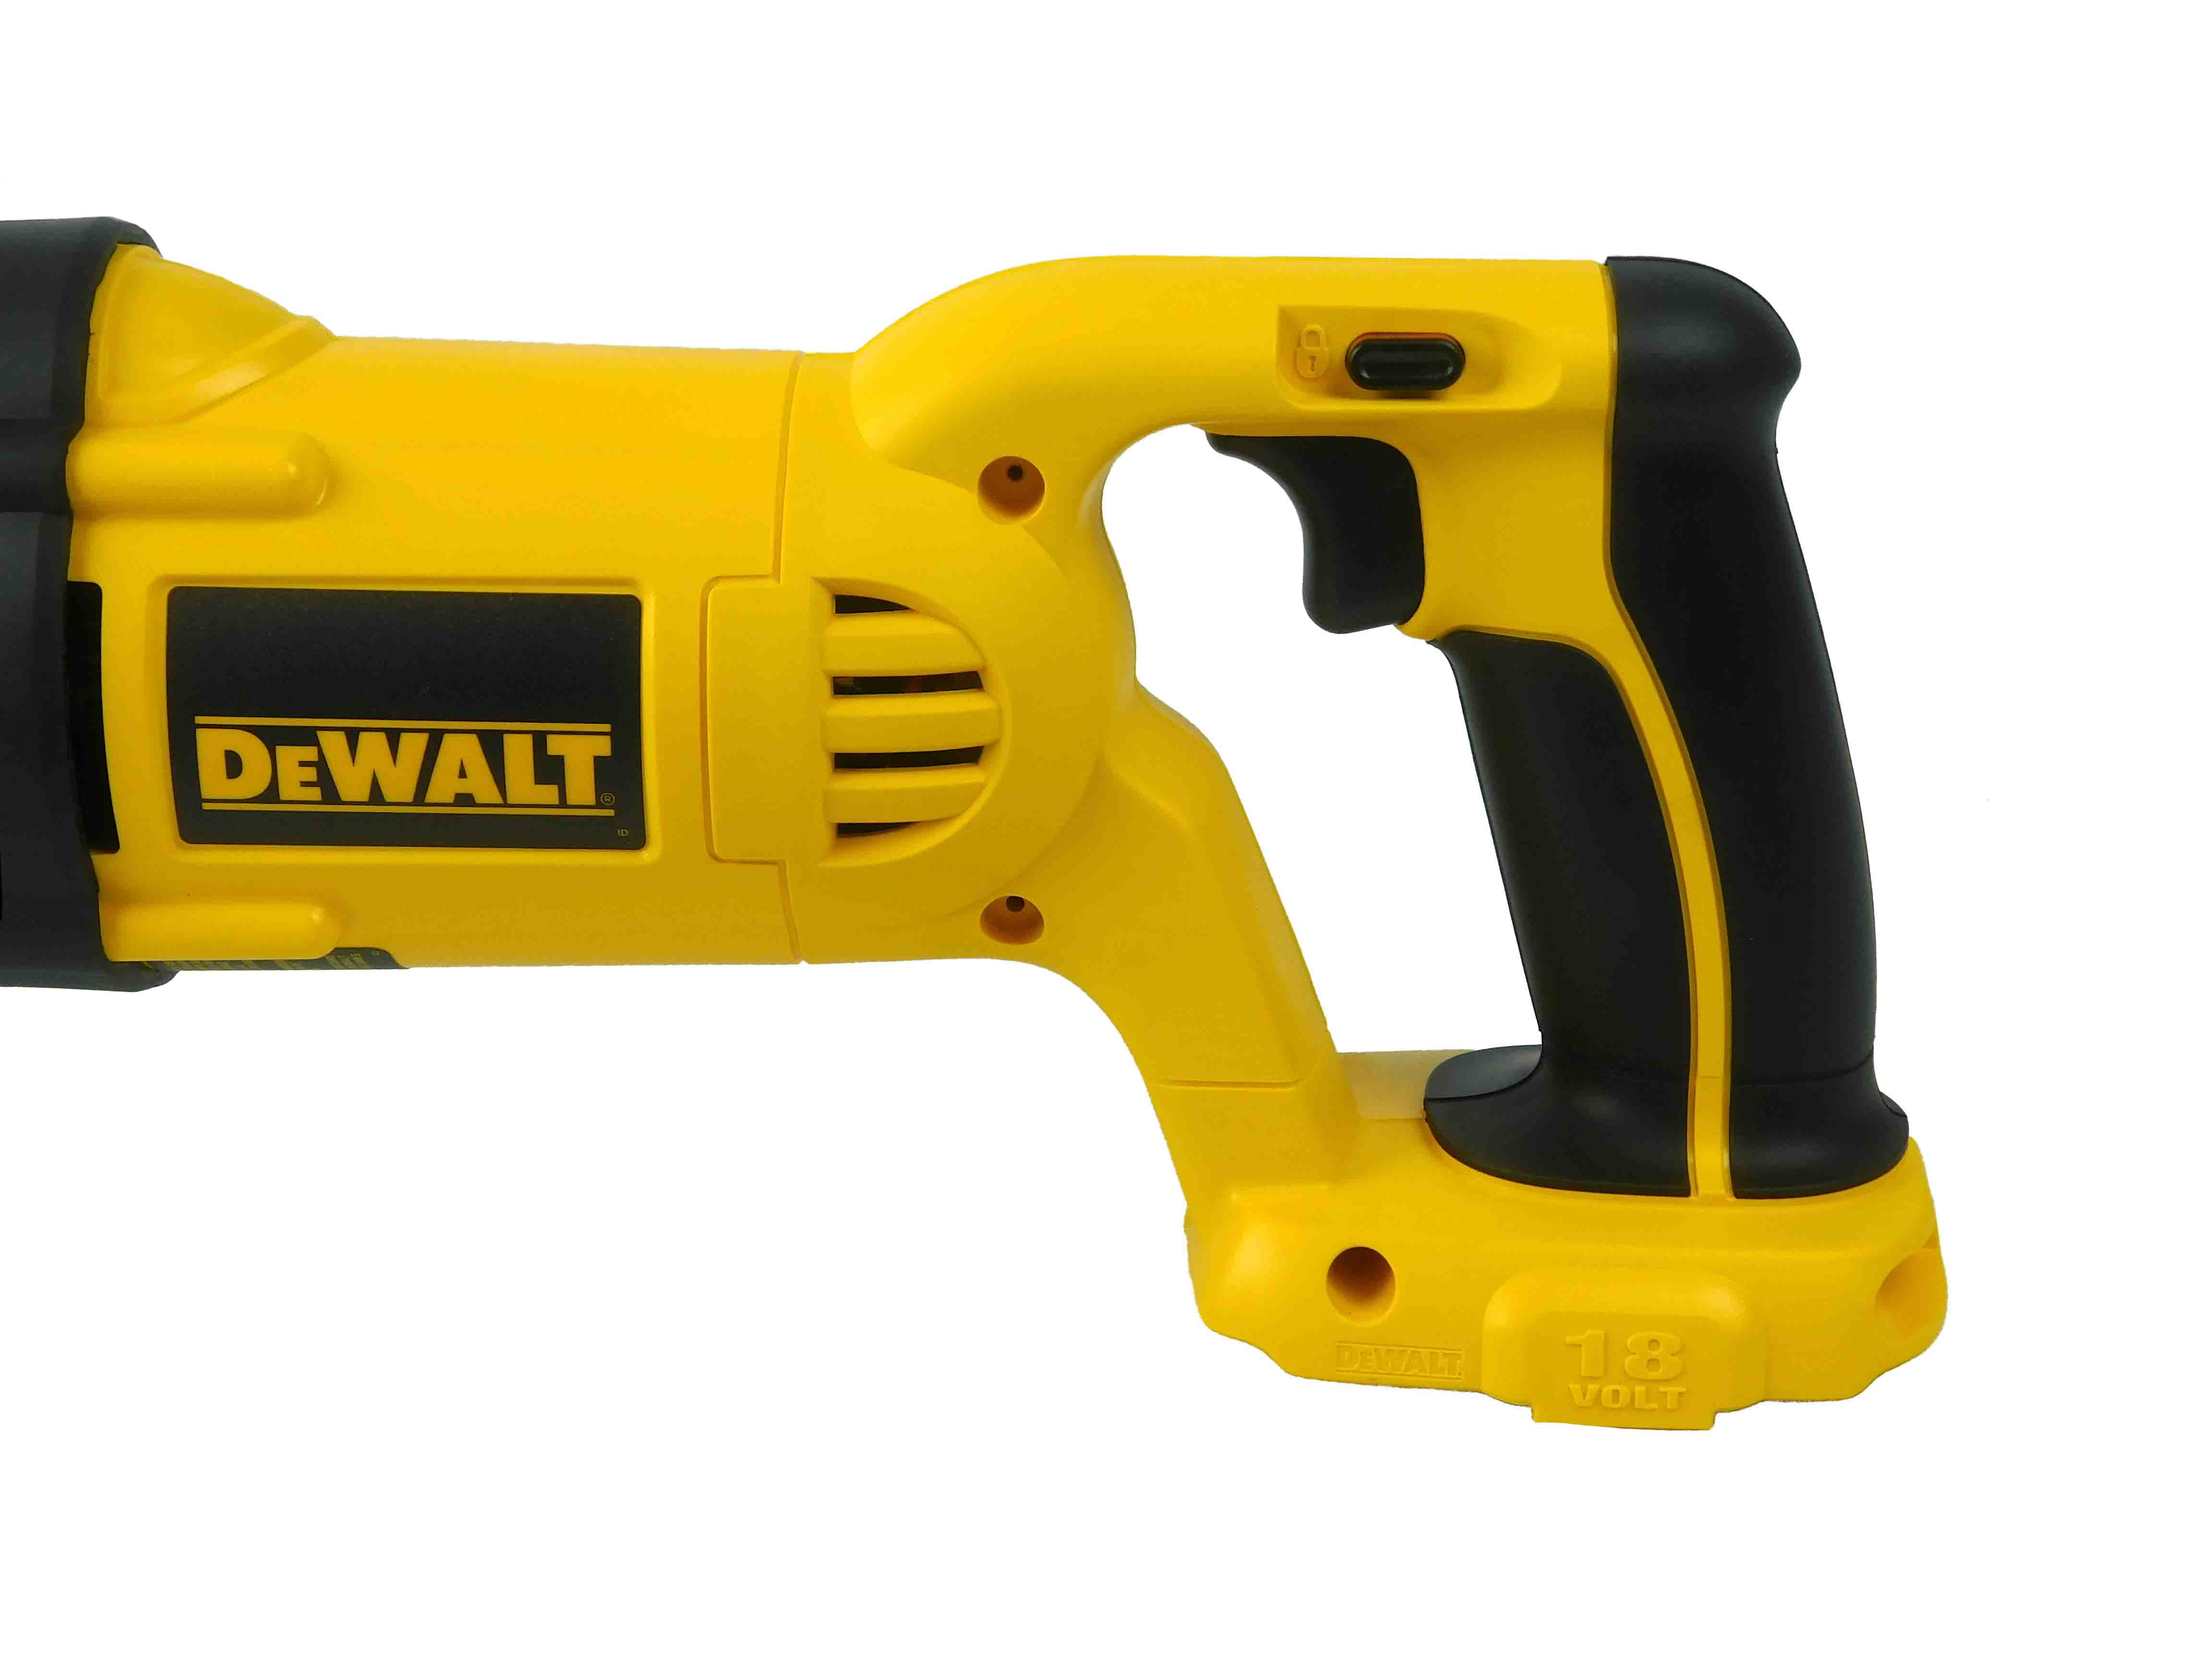 Dewalt-DC385-18V-Reciprocating-Sawzall-Variable-Speed-Cordless-Bare-Tool-image-2